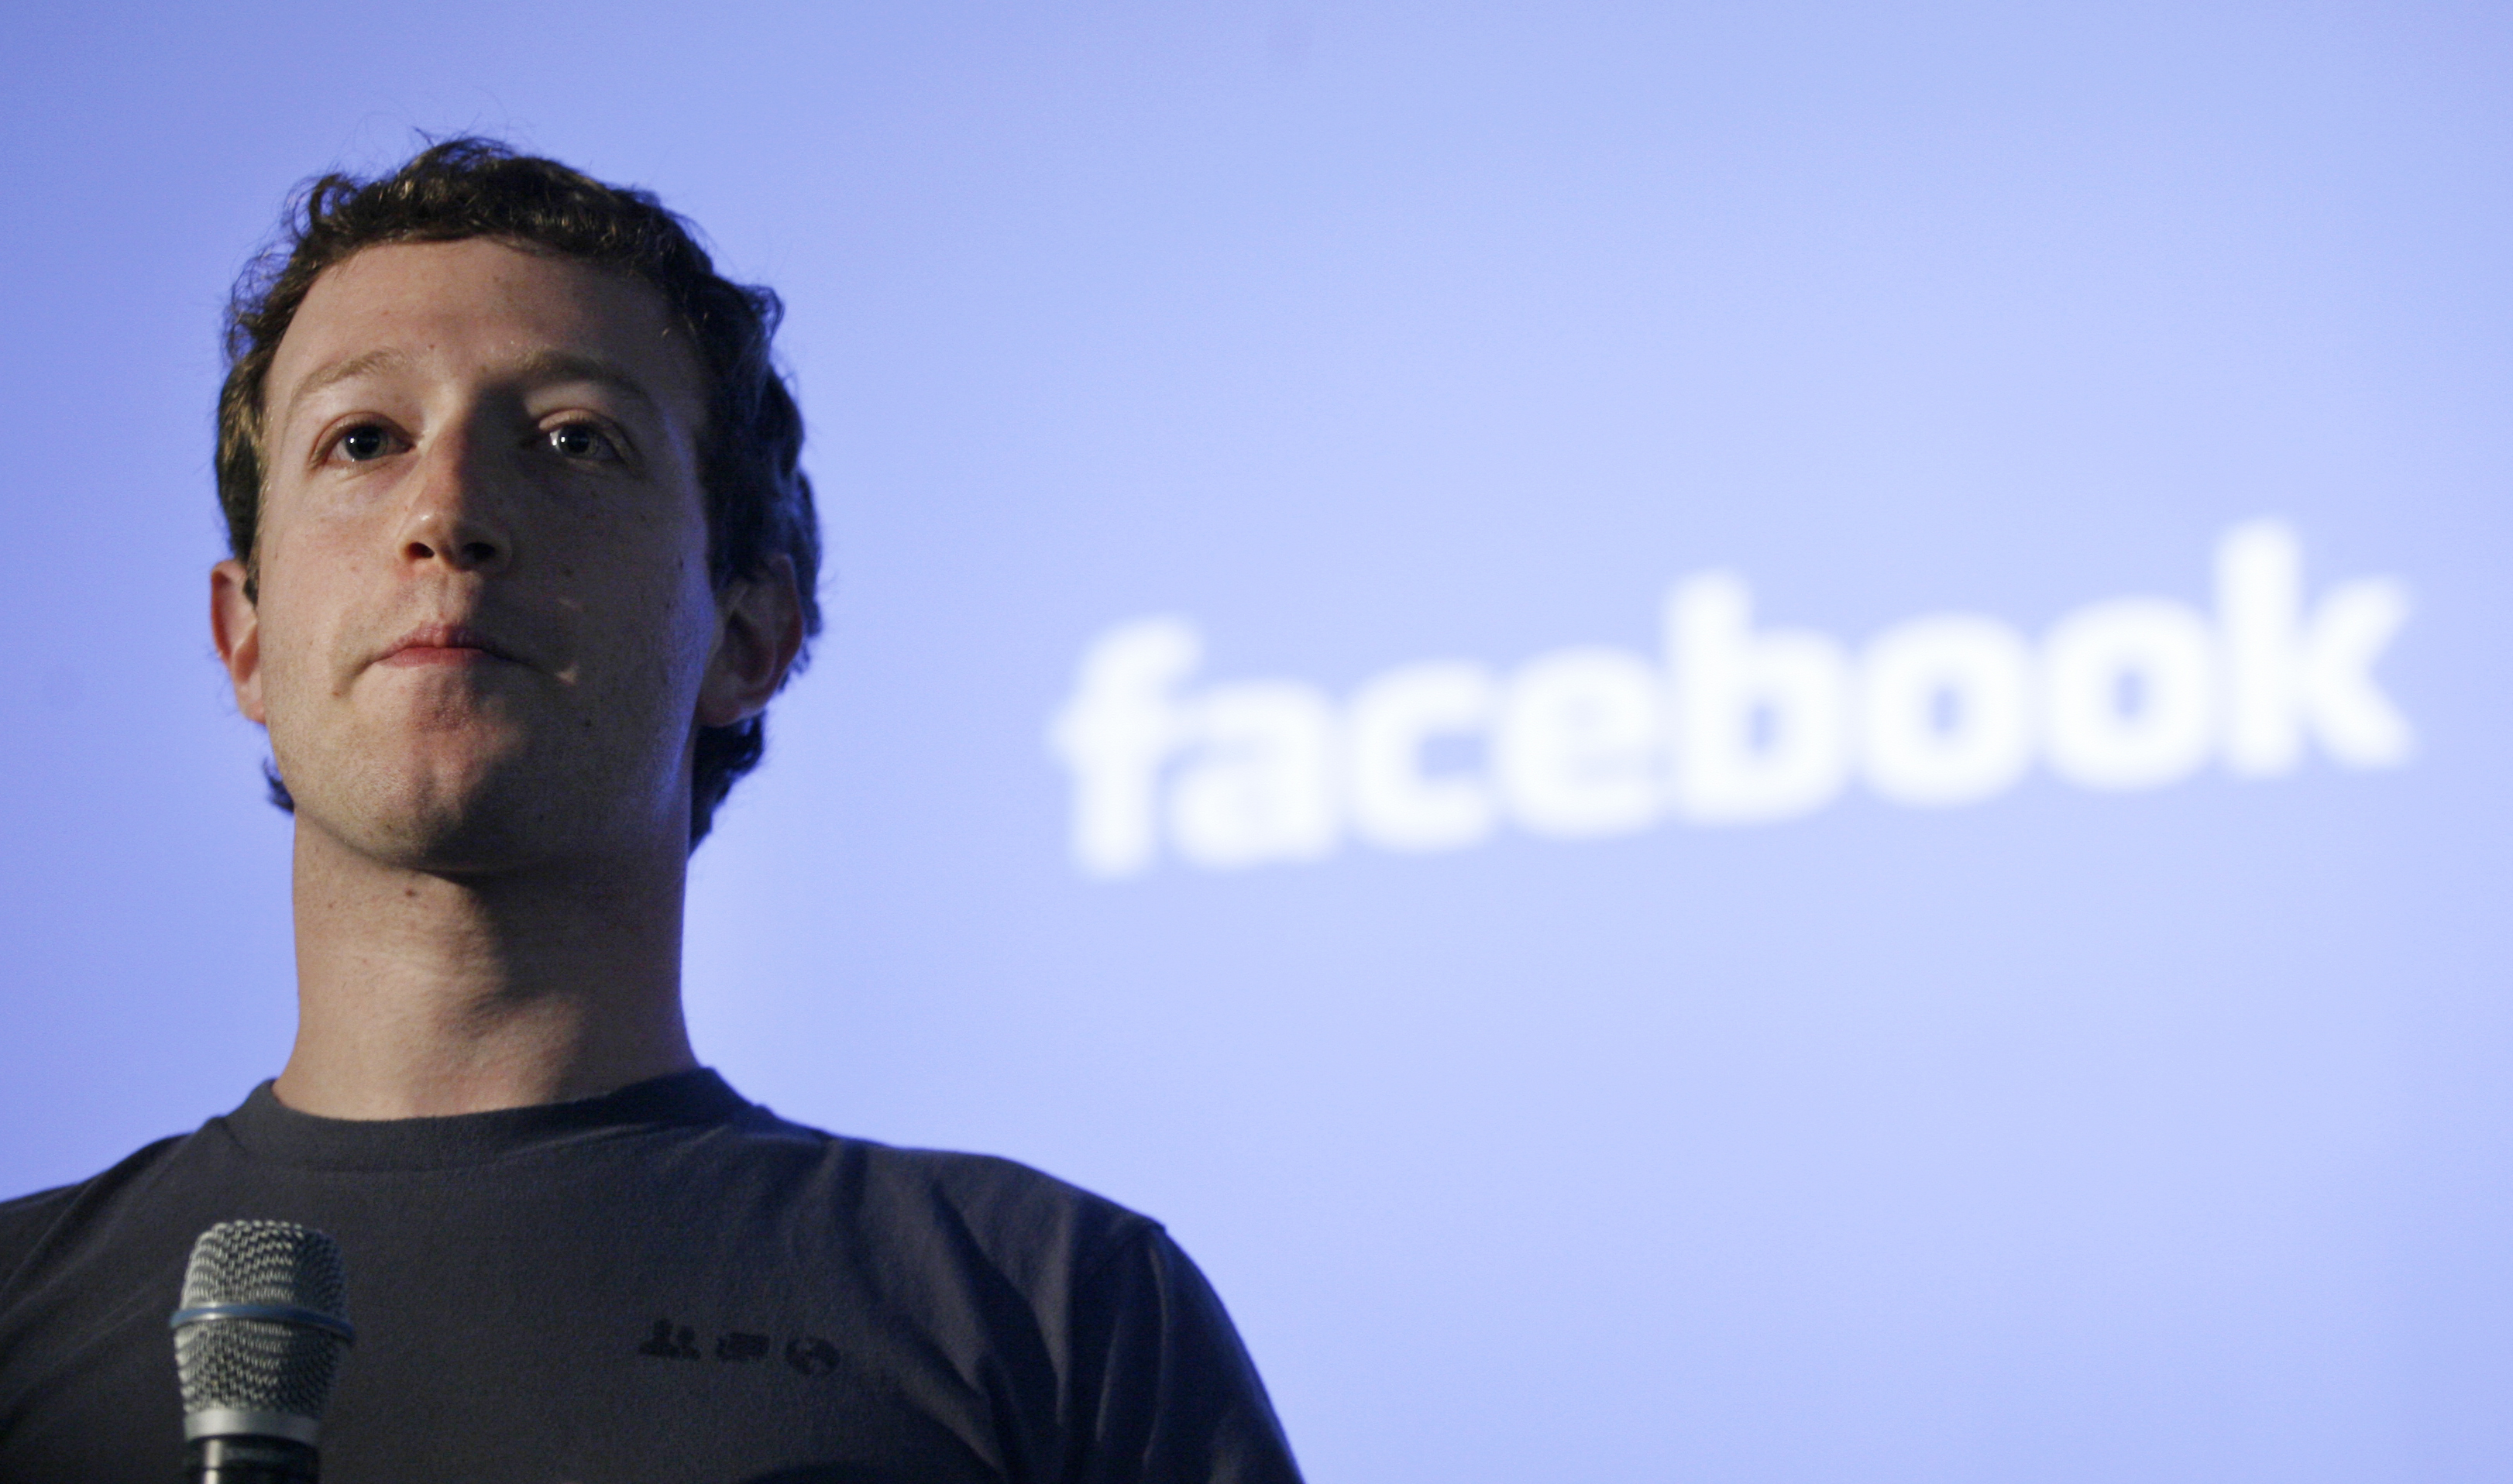 Another acquisition? Facebook needs to focus, not purchase